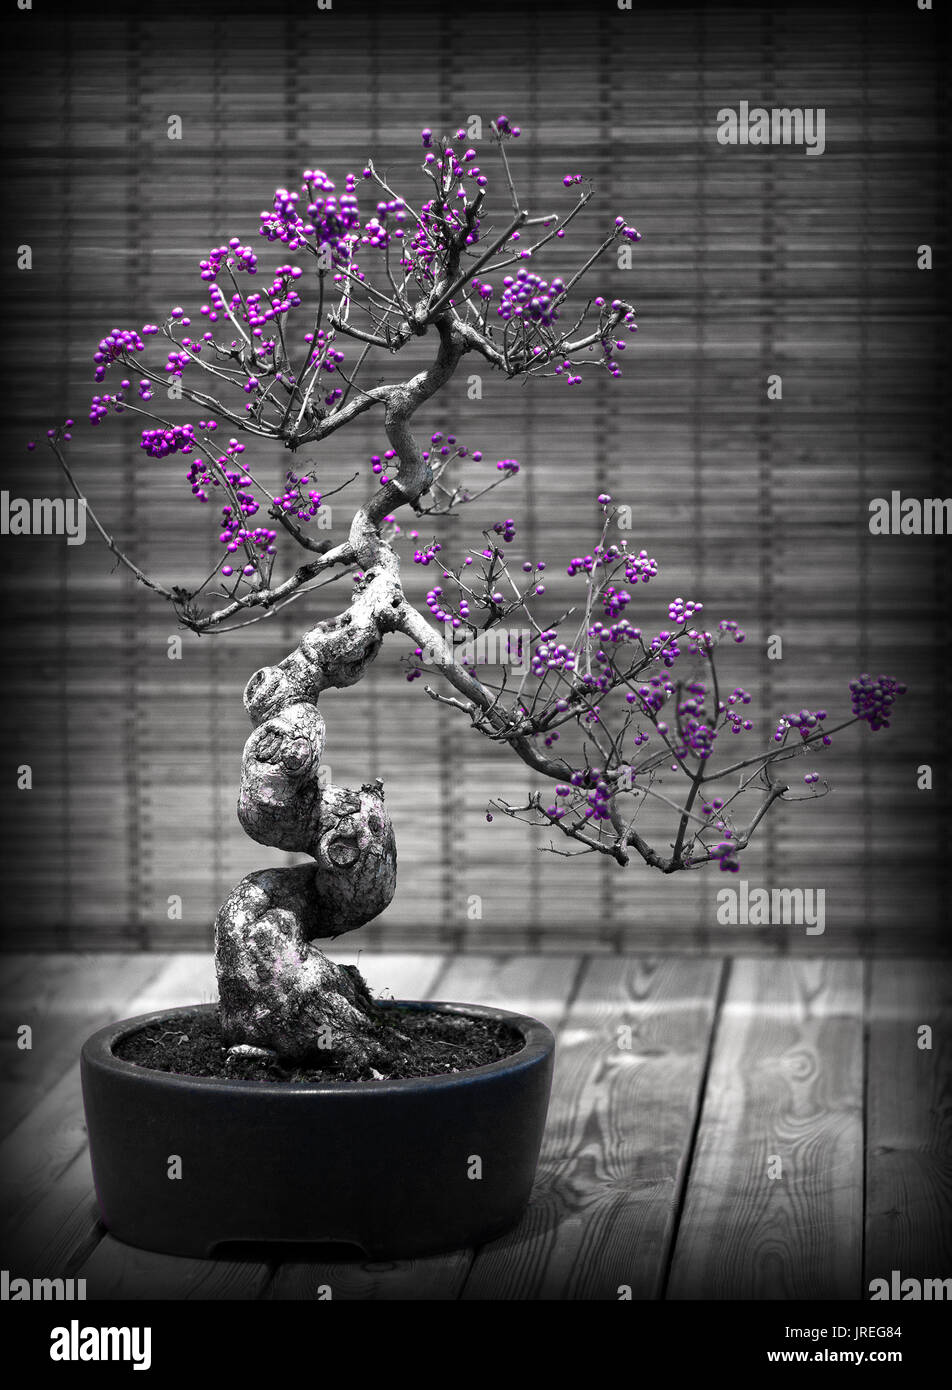 Decorative black and white bonsai tree with purple berries an example of the ancient japanese gardening culture